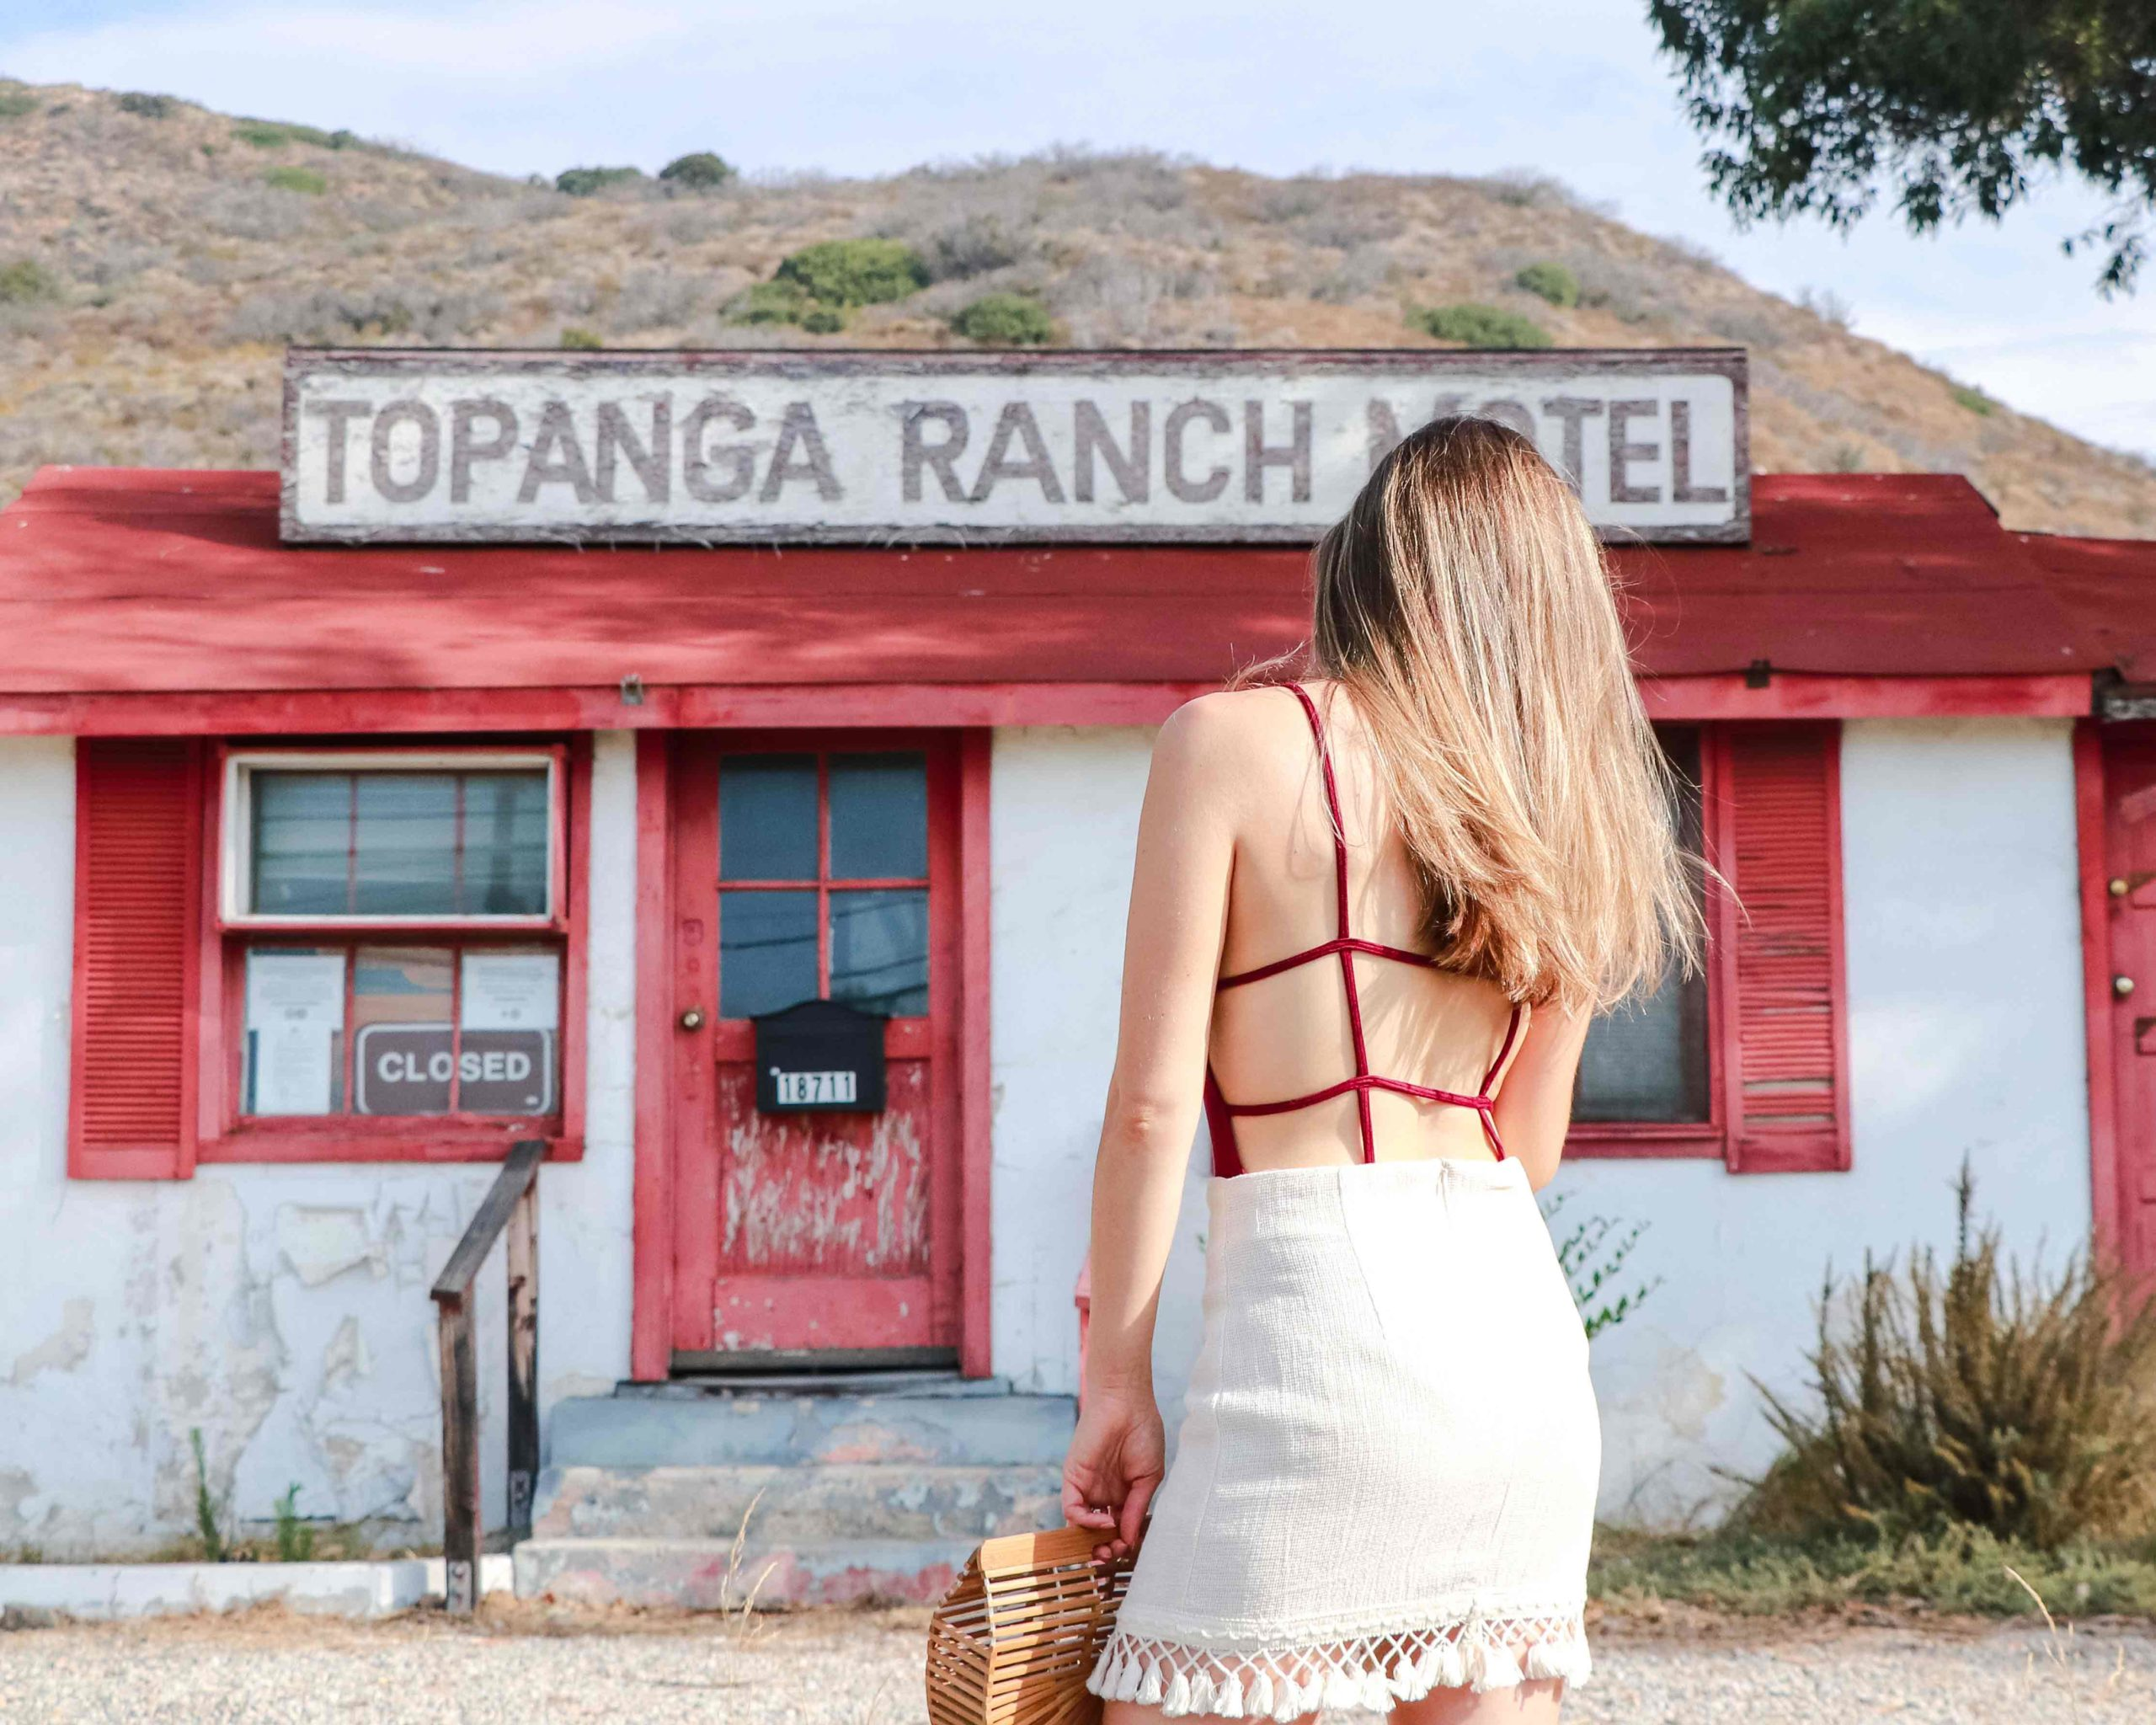 Topanga Ranch Motel - Strappy Back Bodysuit - UO - August Edit: Summer Swimsuit and Bodysuit to show your best back! More on Modersvp.com